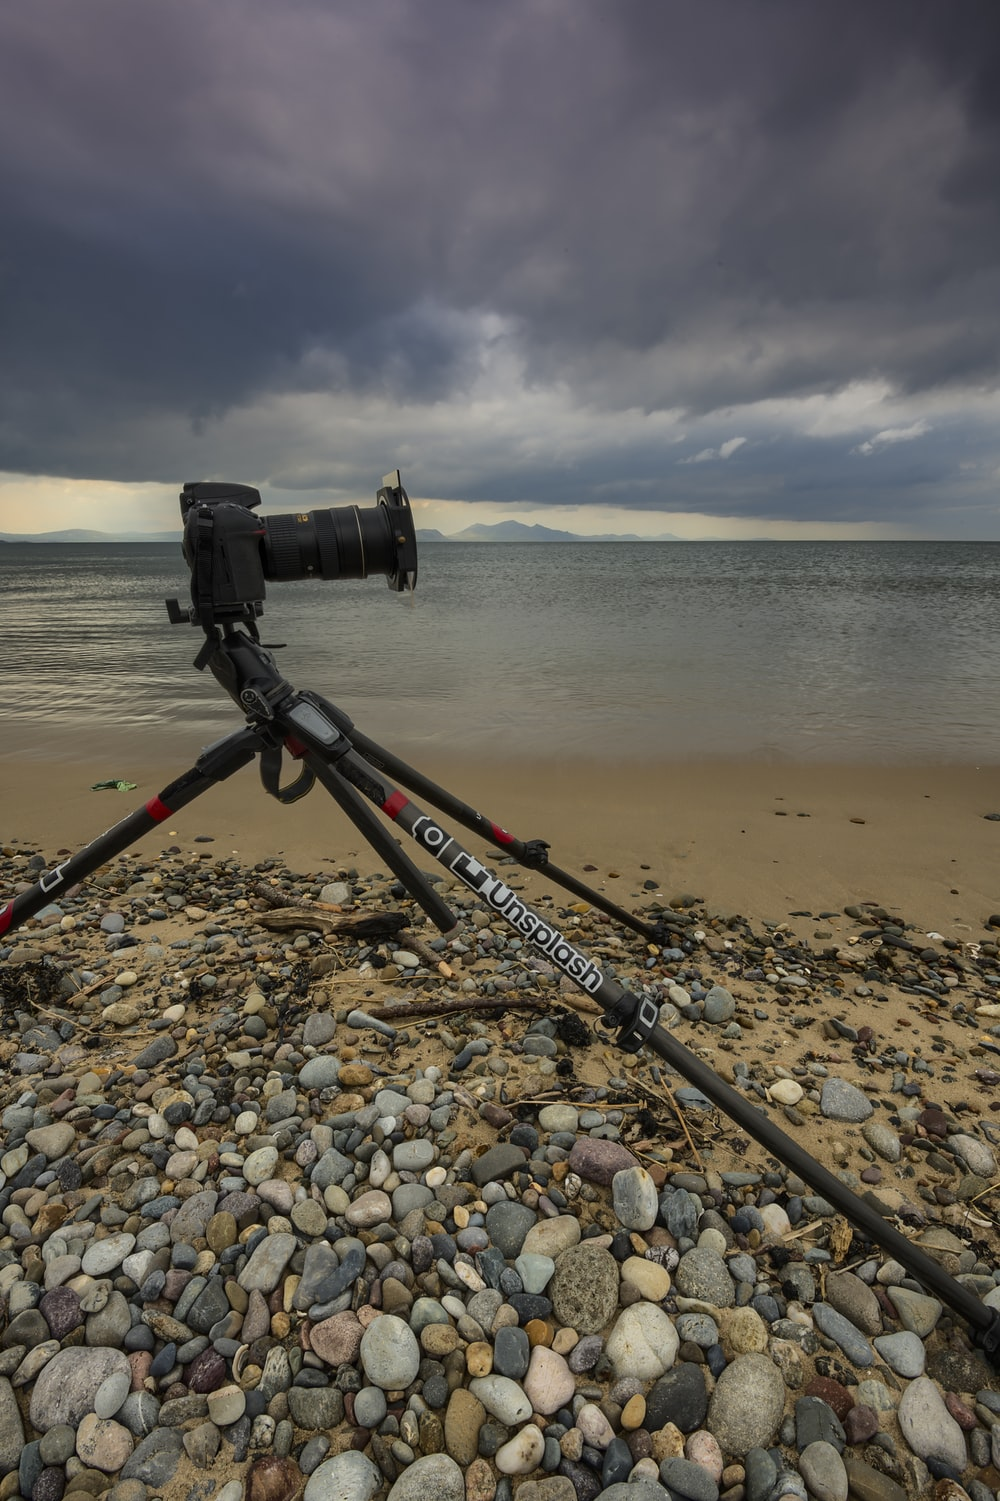 black camera on black tripod on brown sand near body of water during daytime